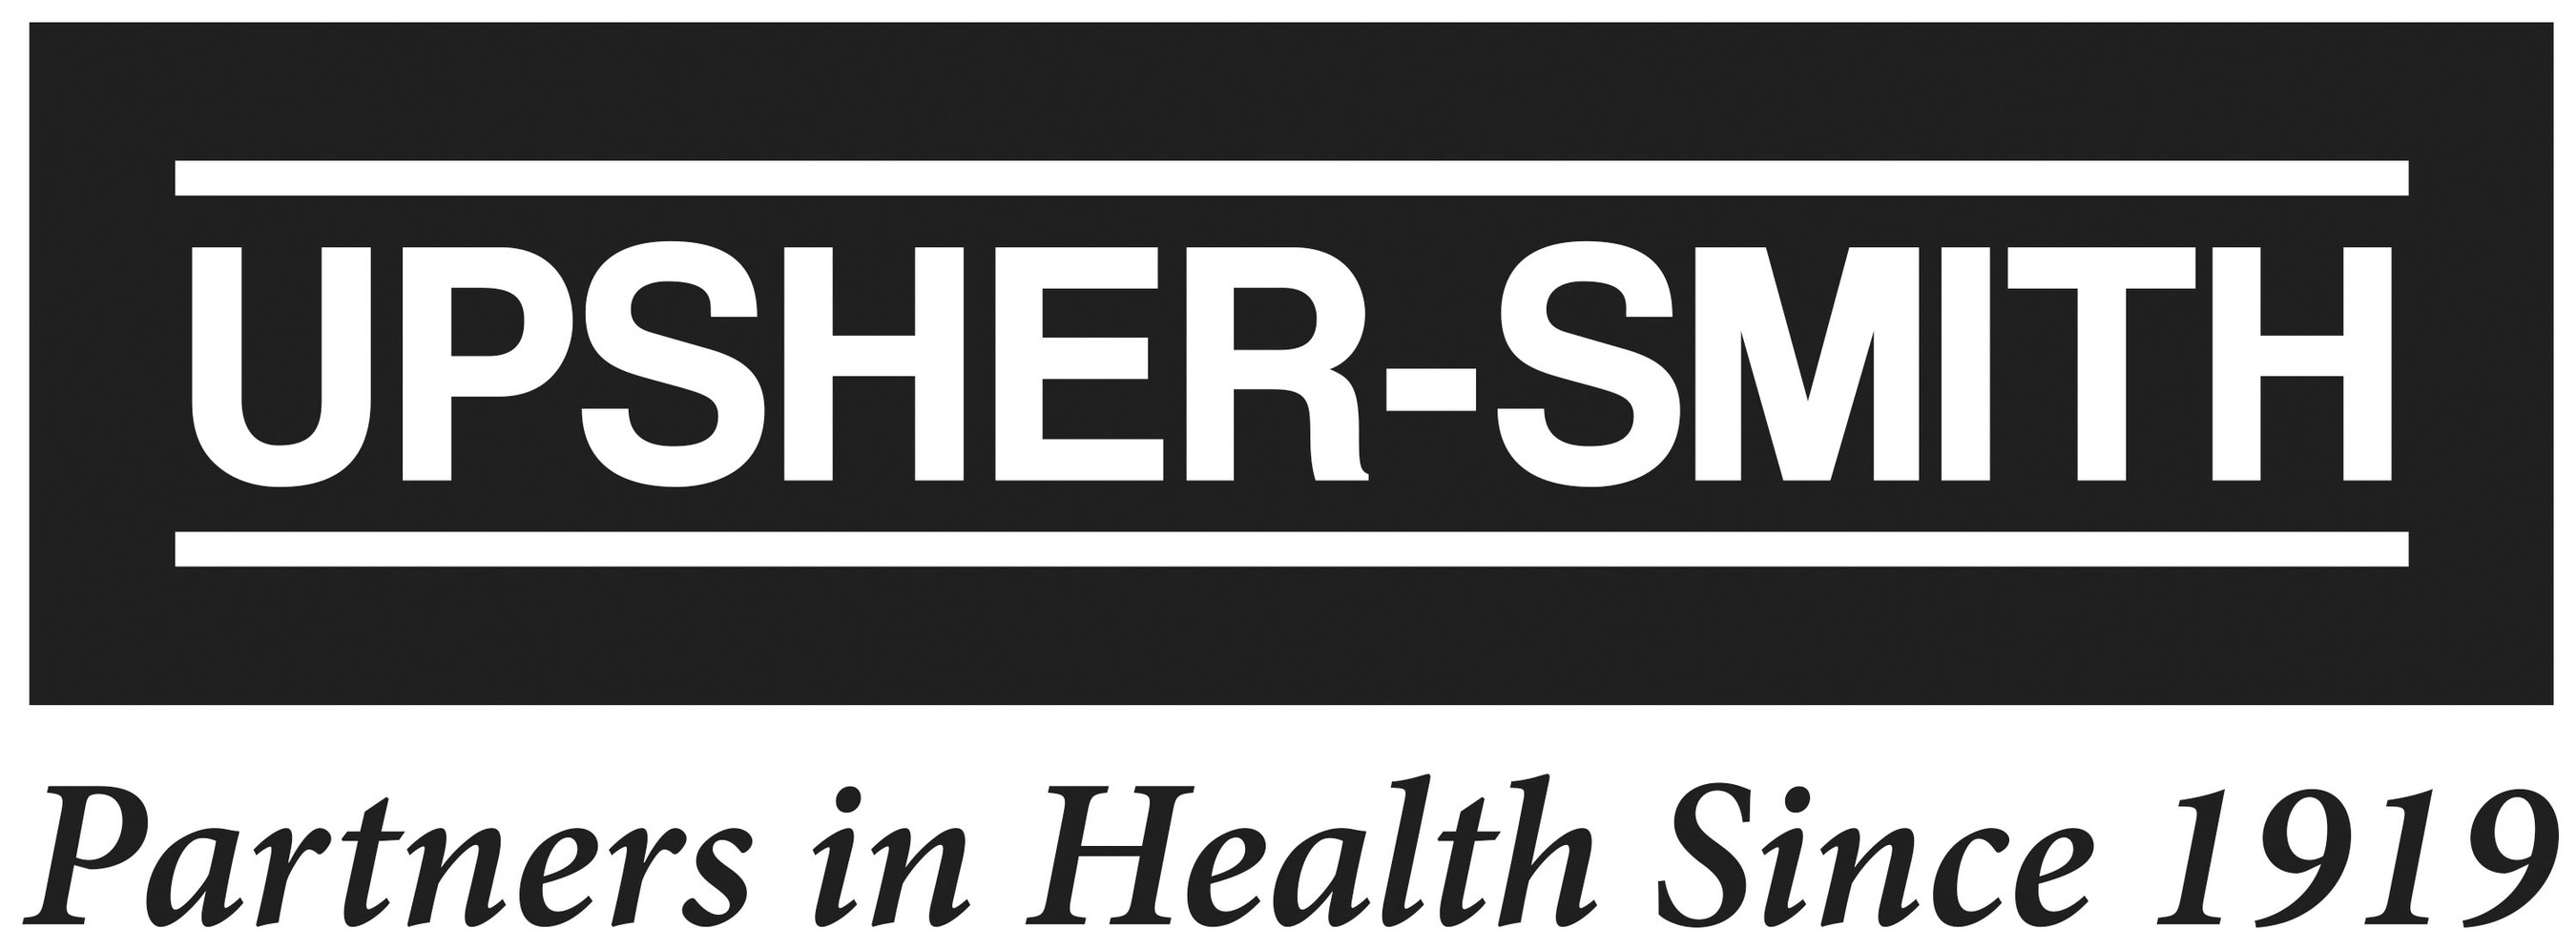 Upsher Smith Laboratories